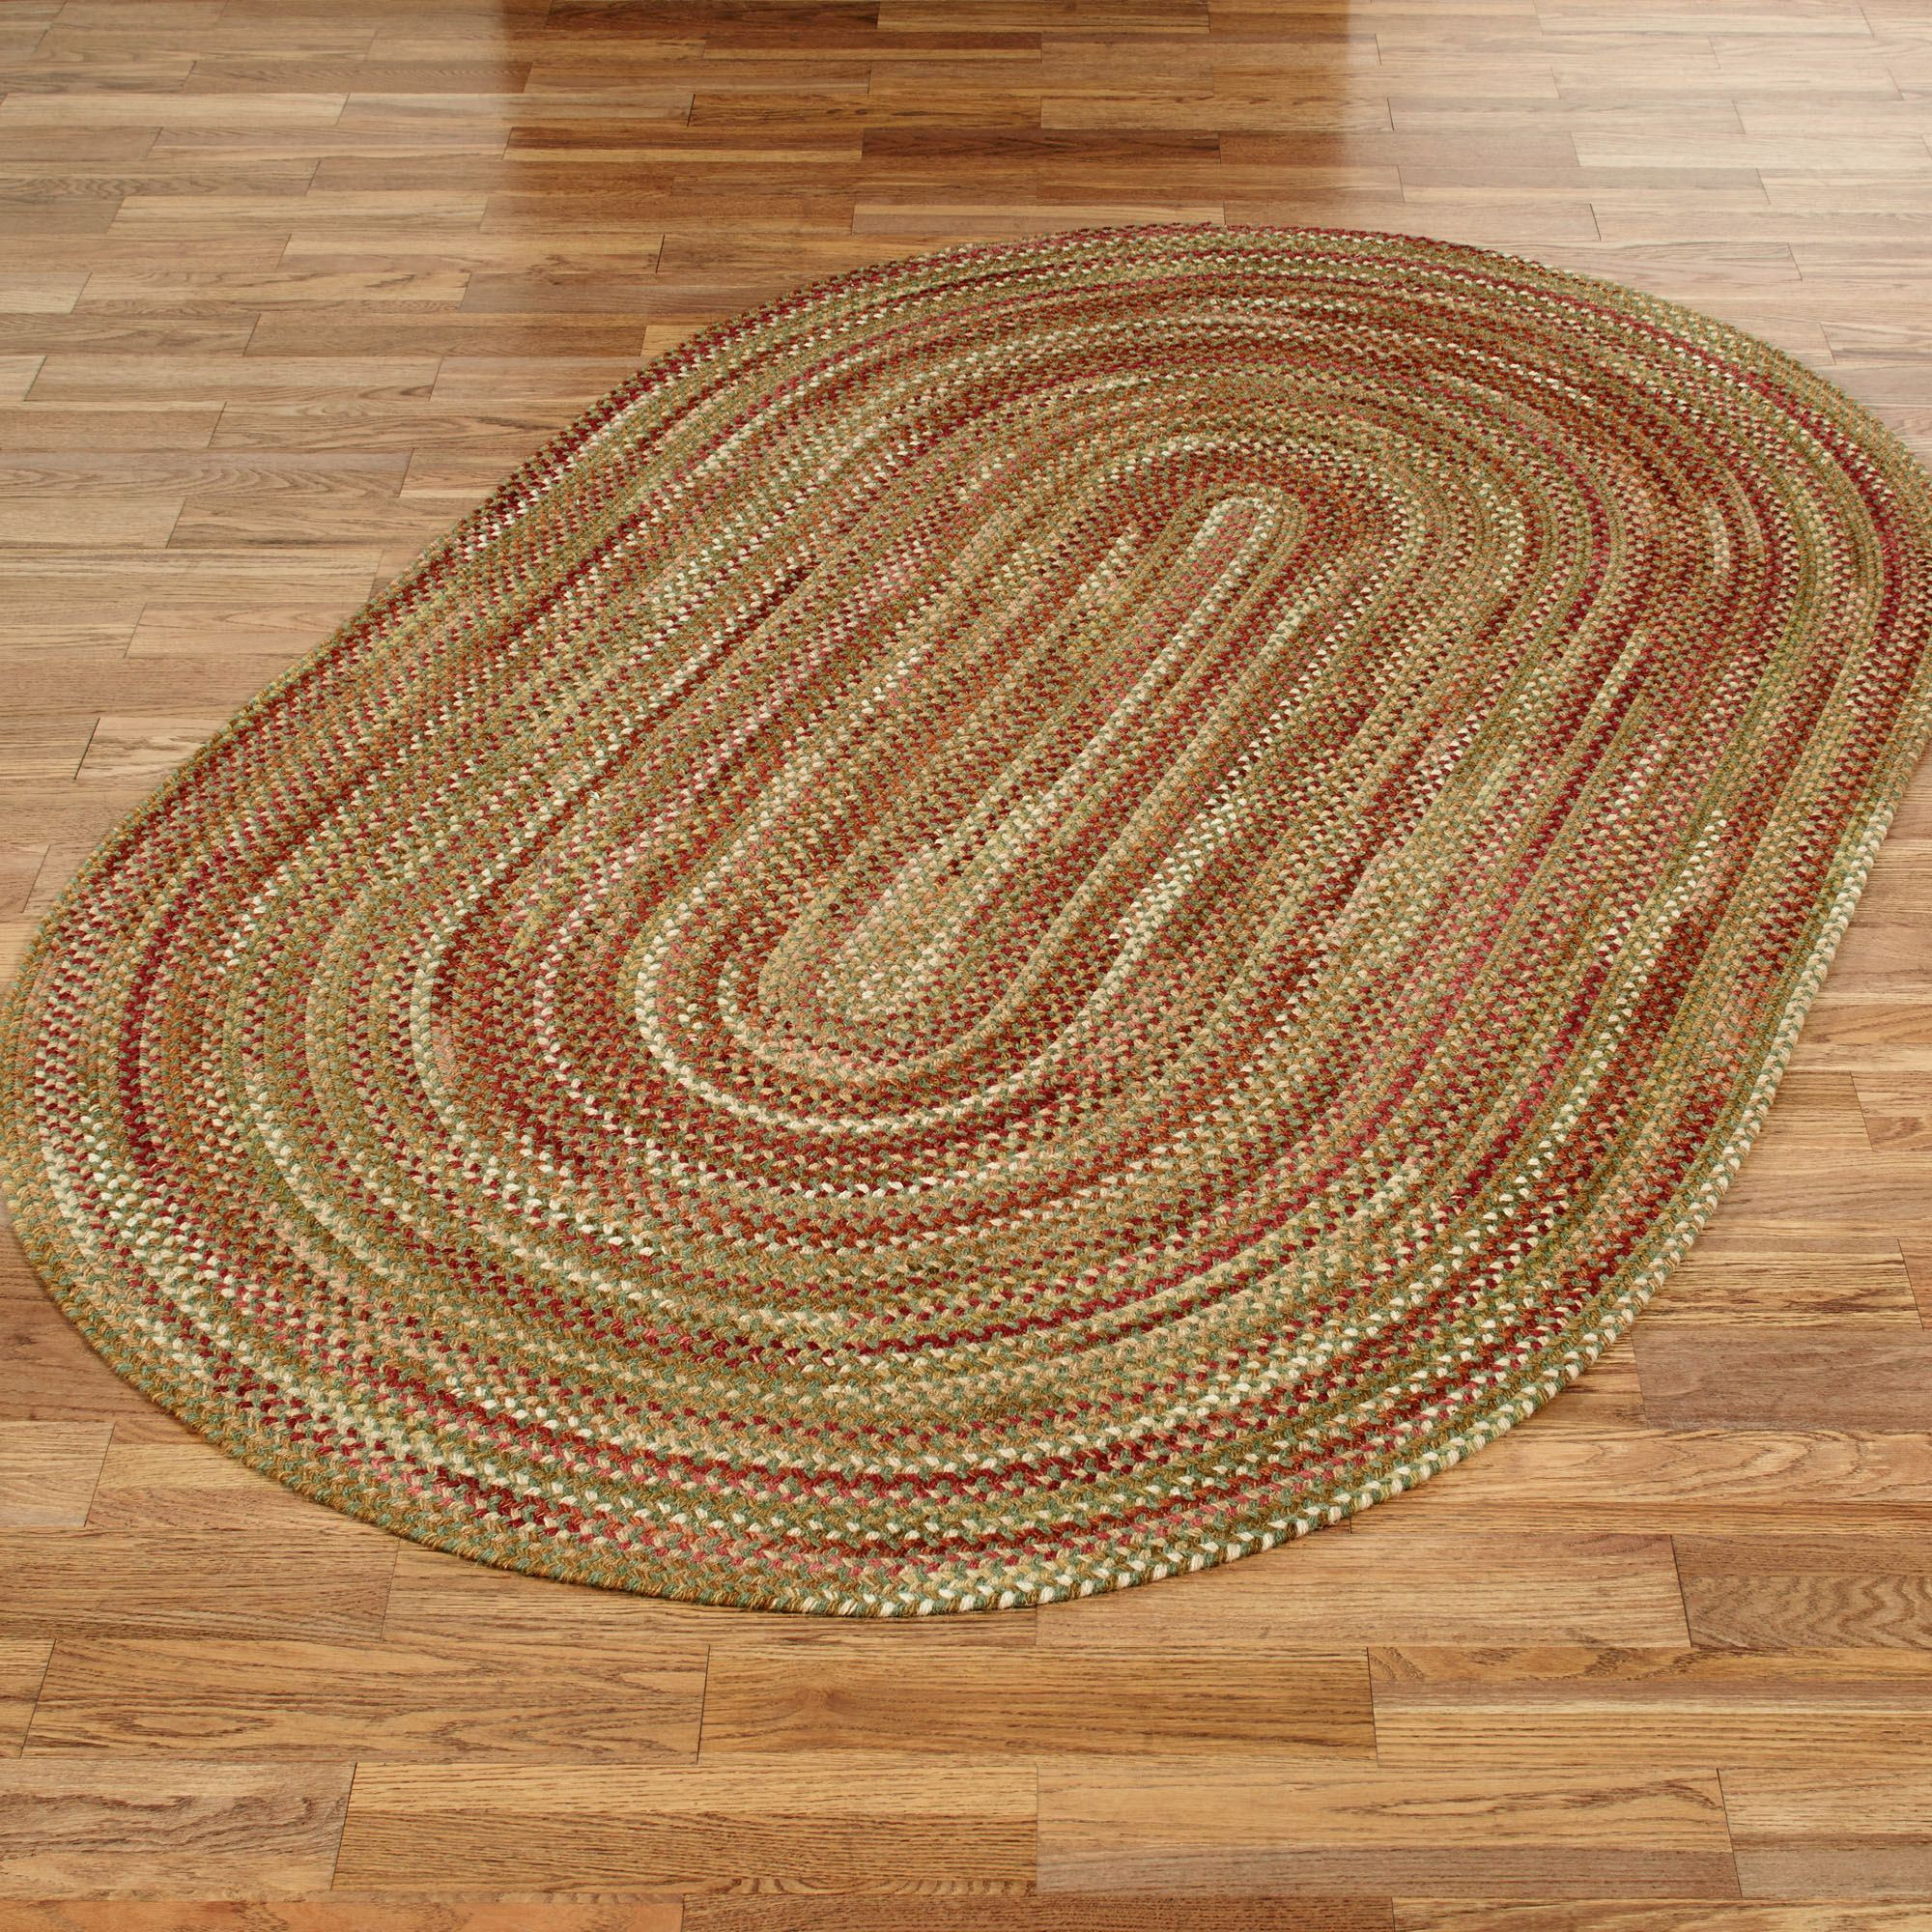 Homecoming Braided Oval Rug